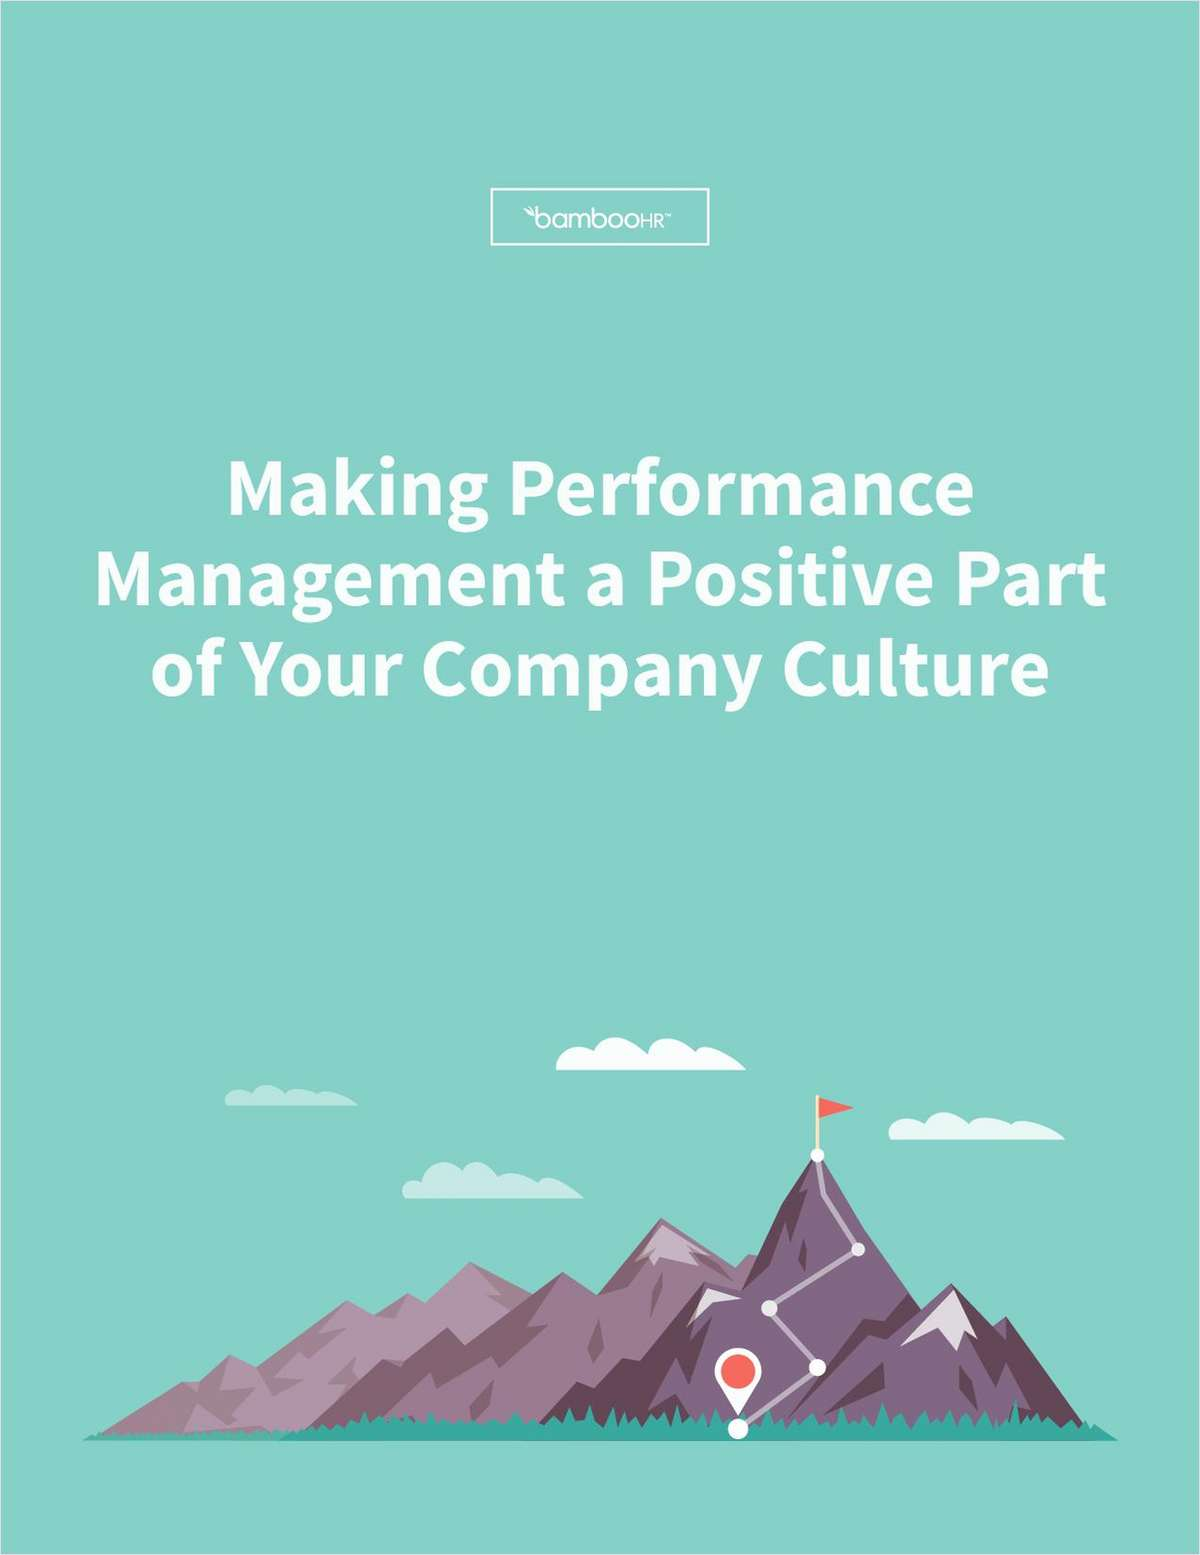 How to Make Employee-Centric Performance Management a Positive Part of Your Company Culture